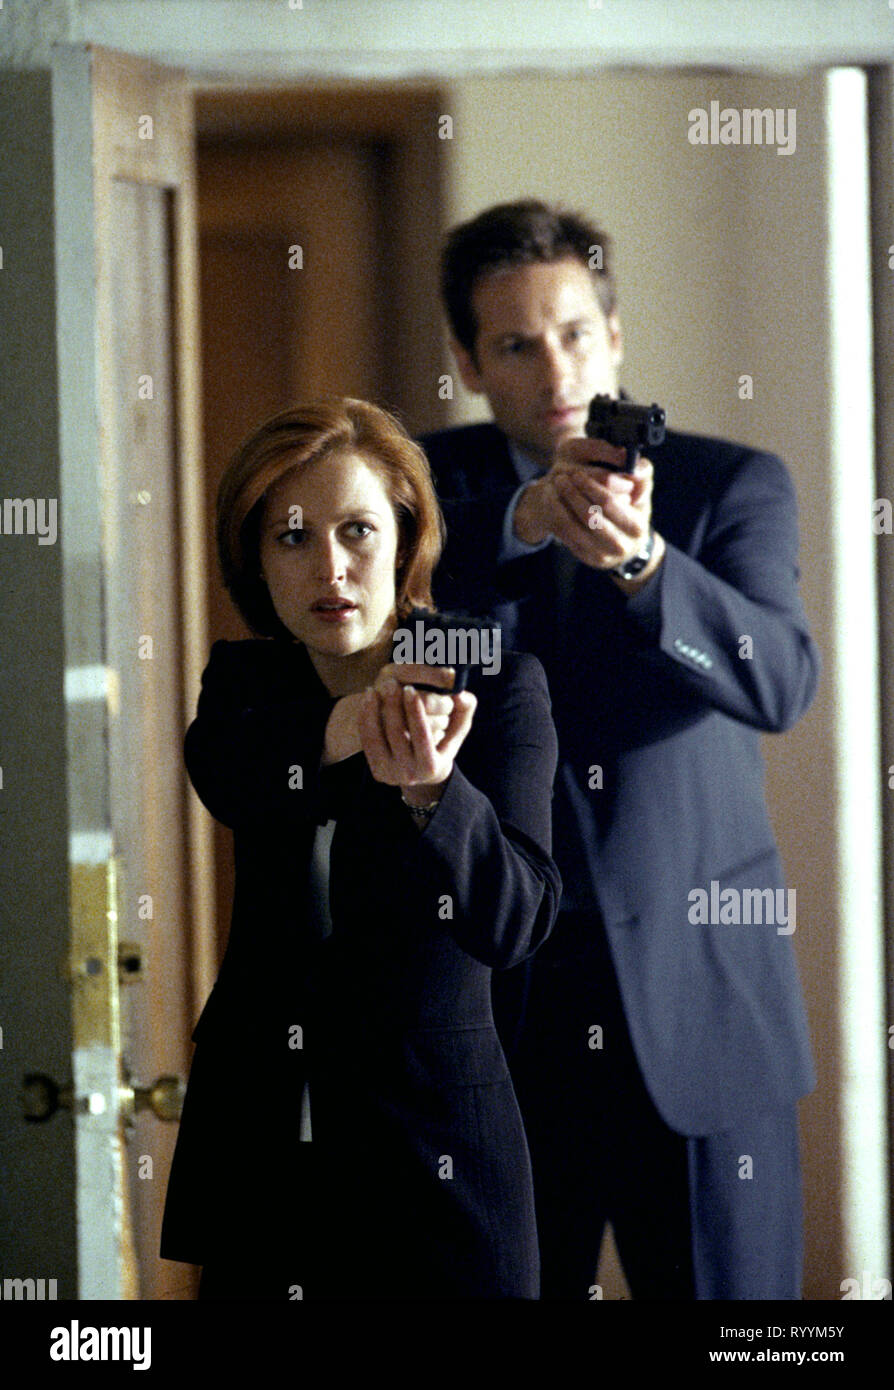 GILLIAN ANDERSON, DAVID DUCHOVNY, THE X FILES, 1993 - Stock Image